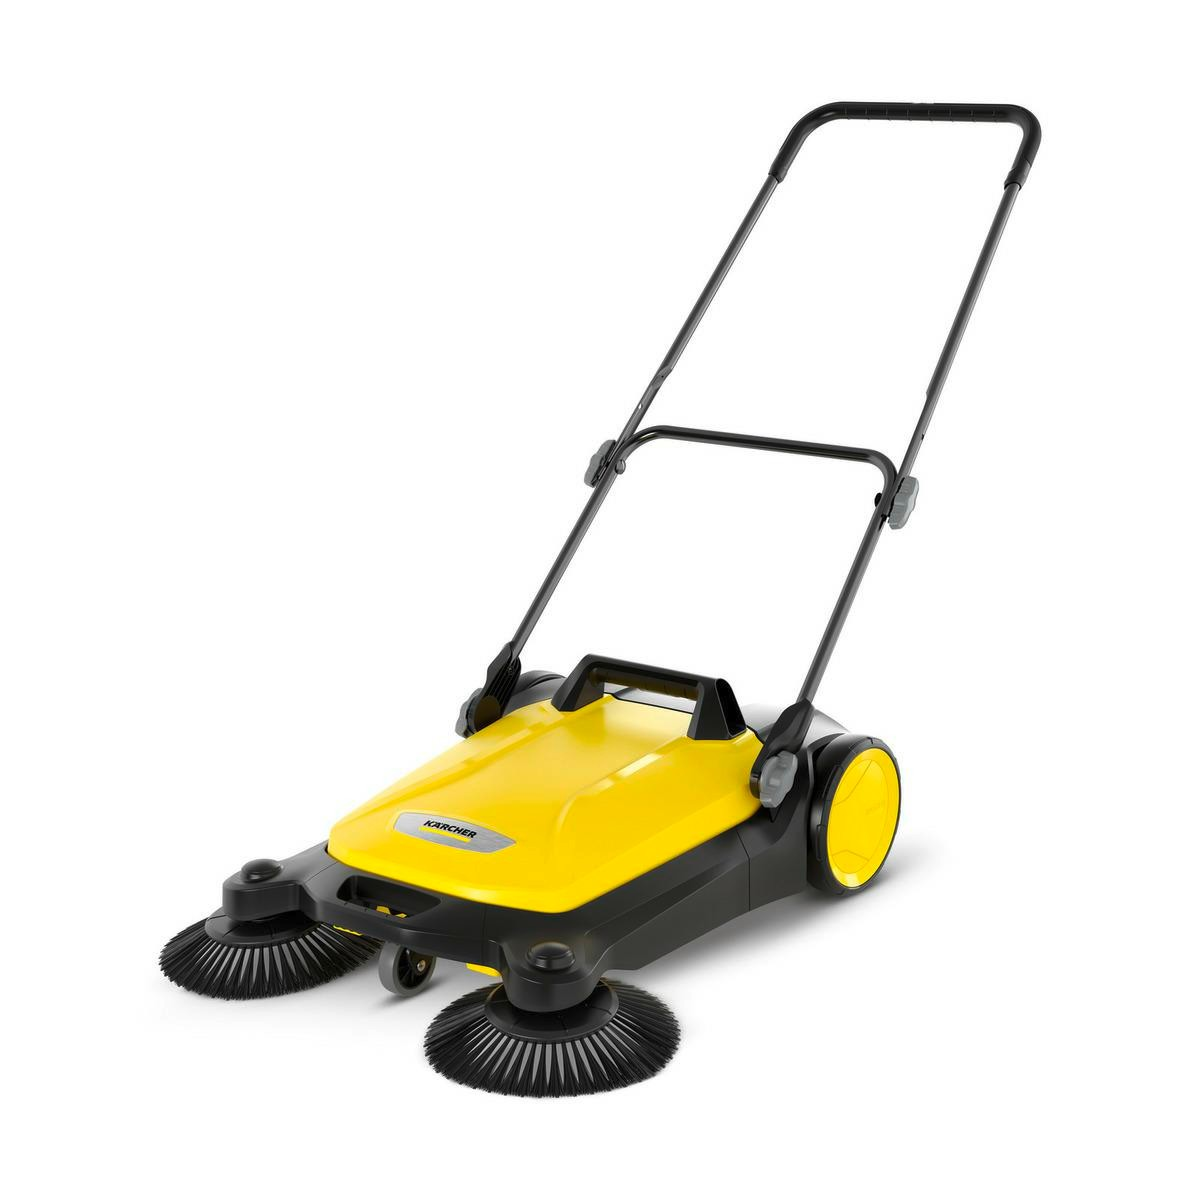 S 4 Twin Zamiatarka Karcher